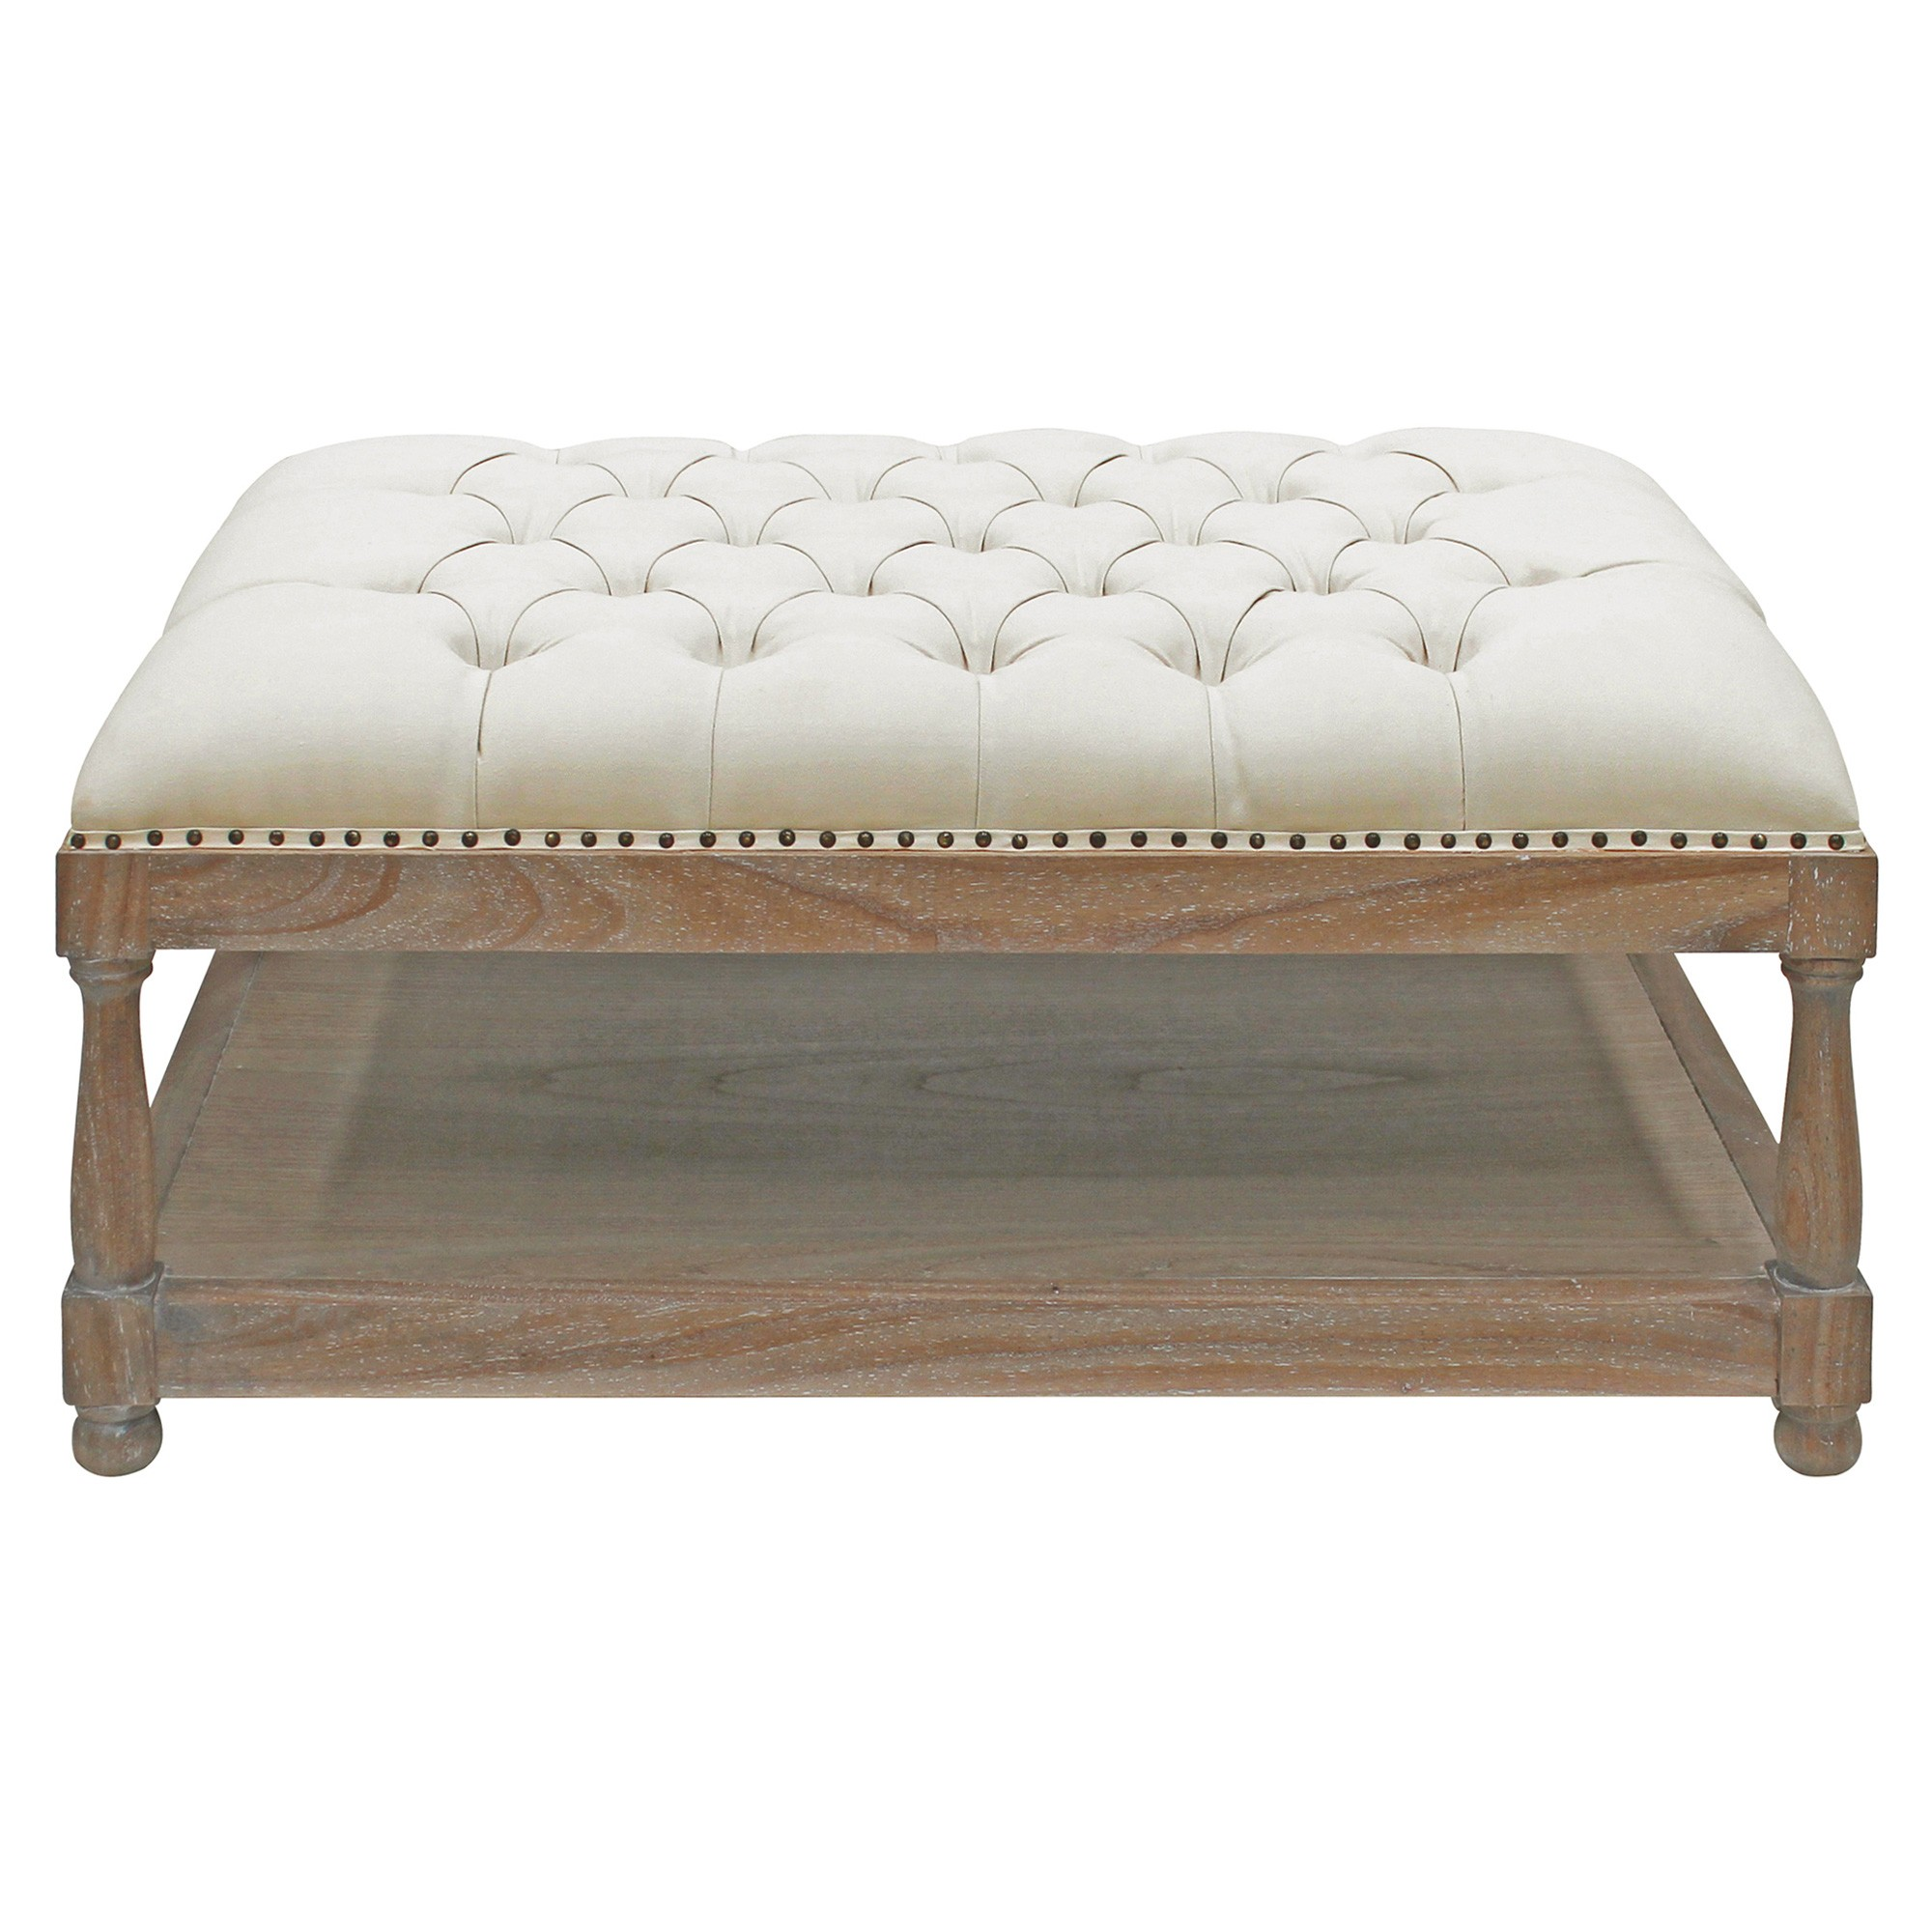 Sanvensa Hand Crafted Upholstered Mindi Wood Timber Ottoman, Oatmeal / Weathered Oak